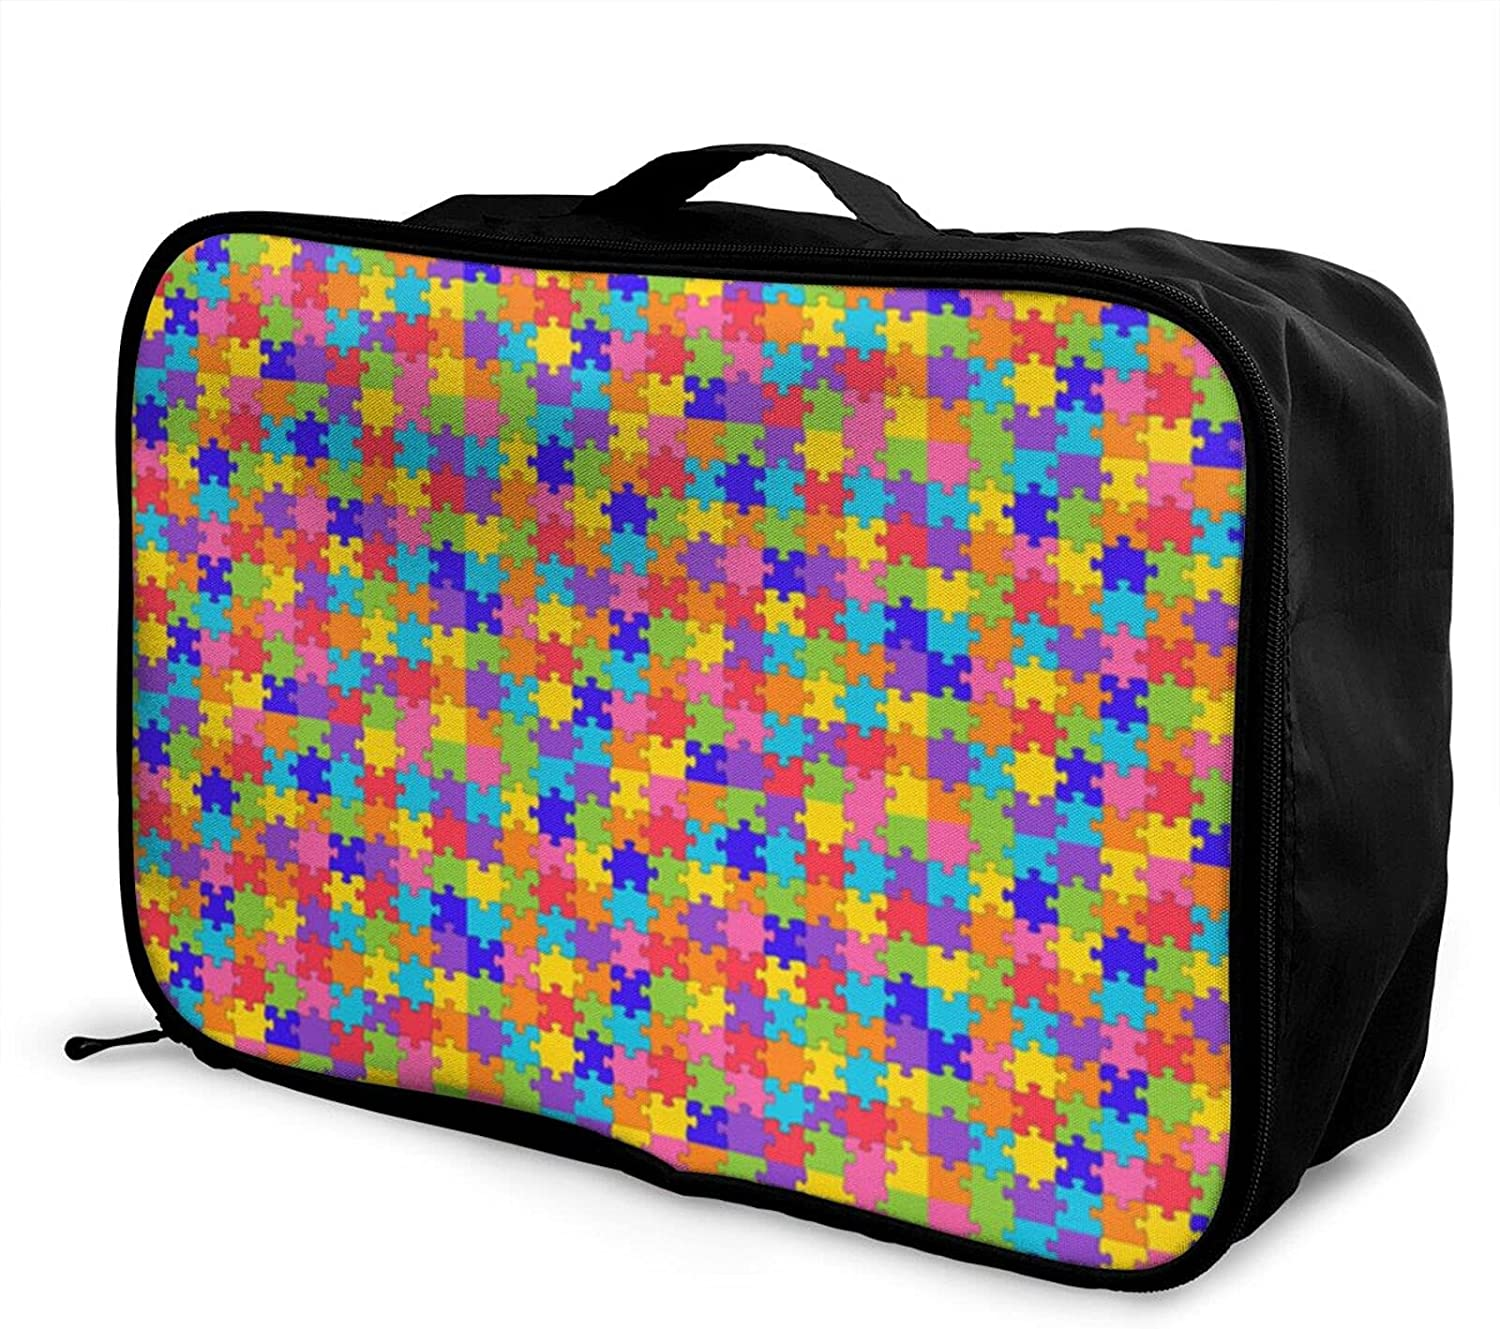 Foldable Travel Fort OFFicial mail order Worth Mall Bag Tote Colorful Pieces Awareness Puzzle Autism